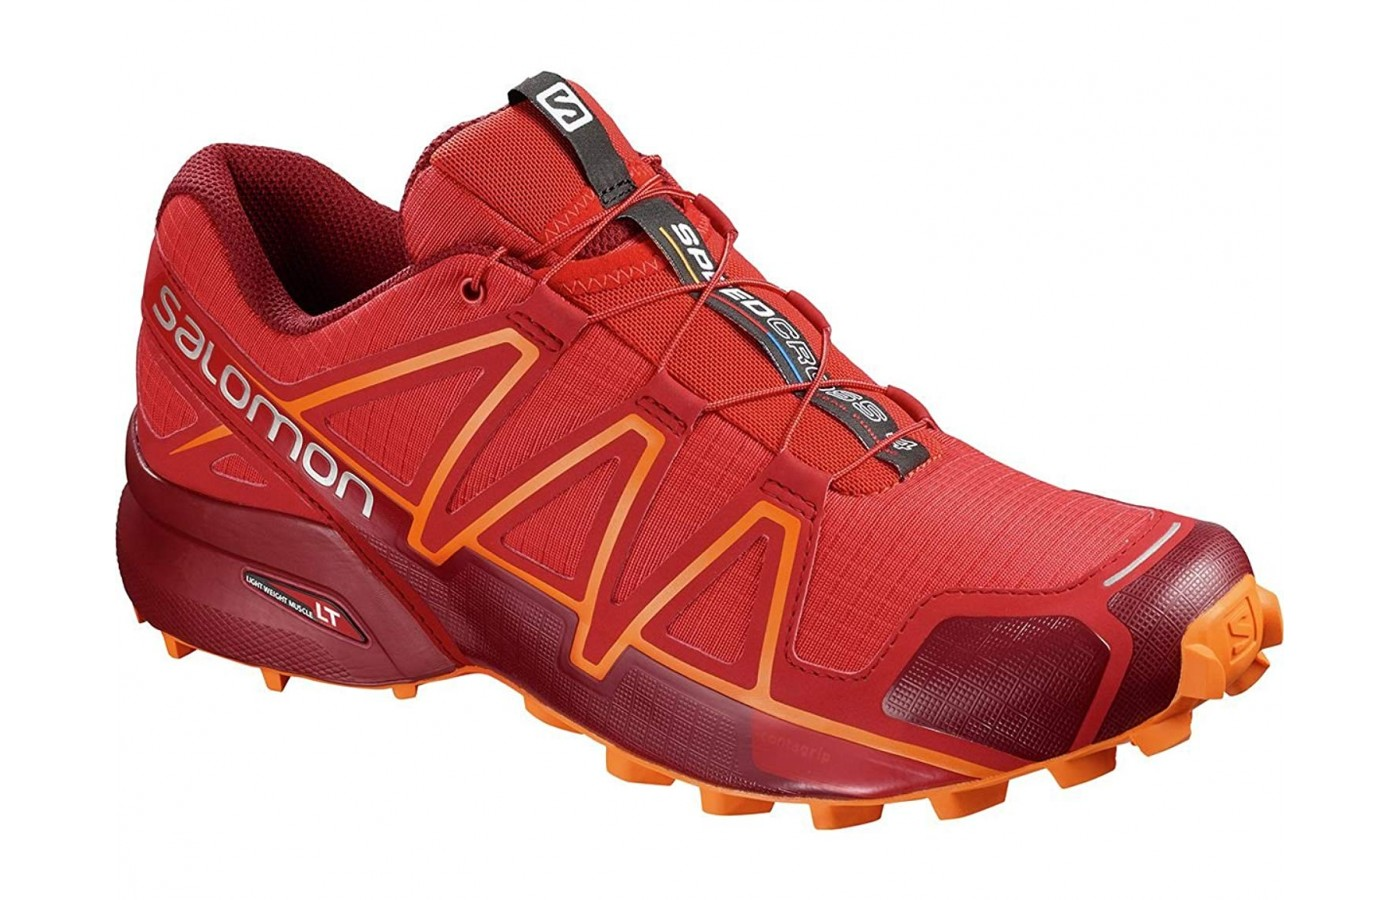 Salomon Speedcross 4 Side View 2